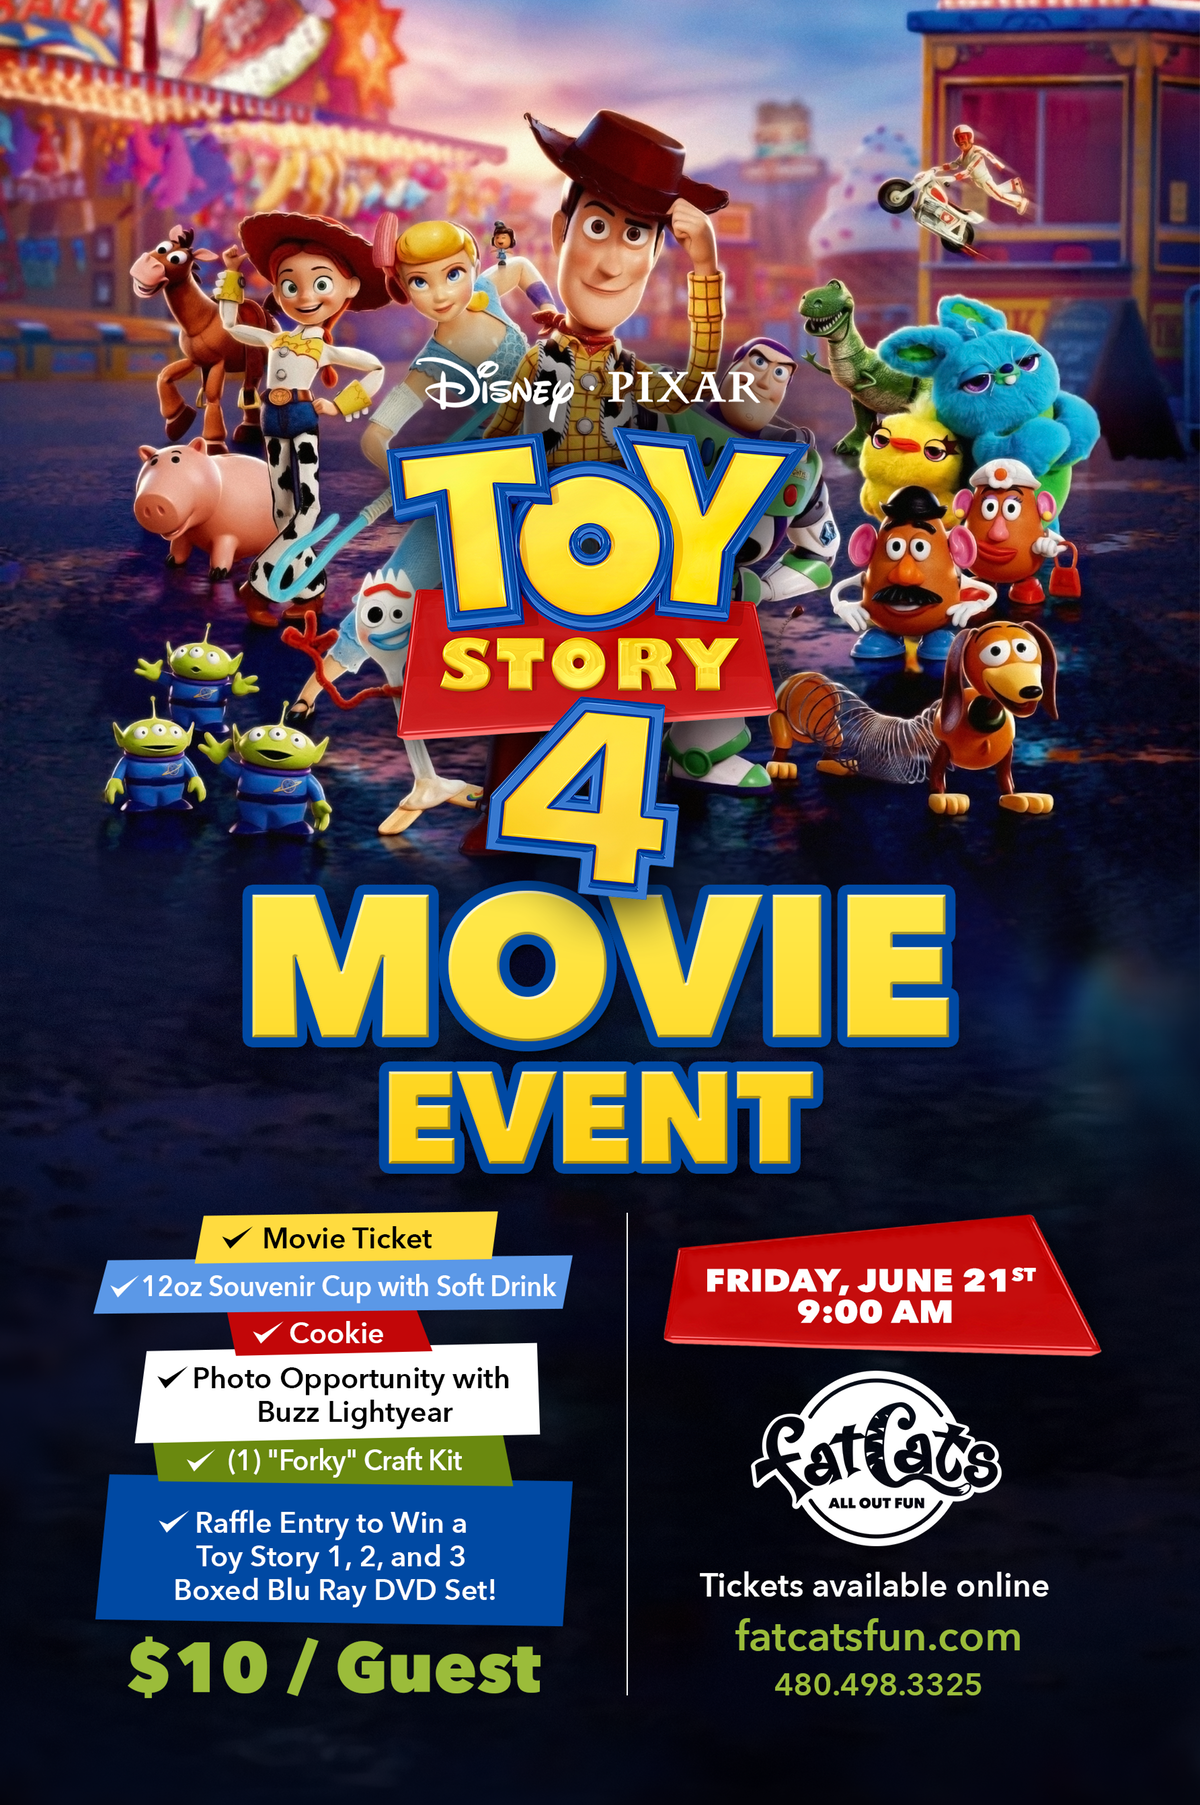 Toy Story 4 Movie Event Poster With Forky